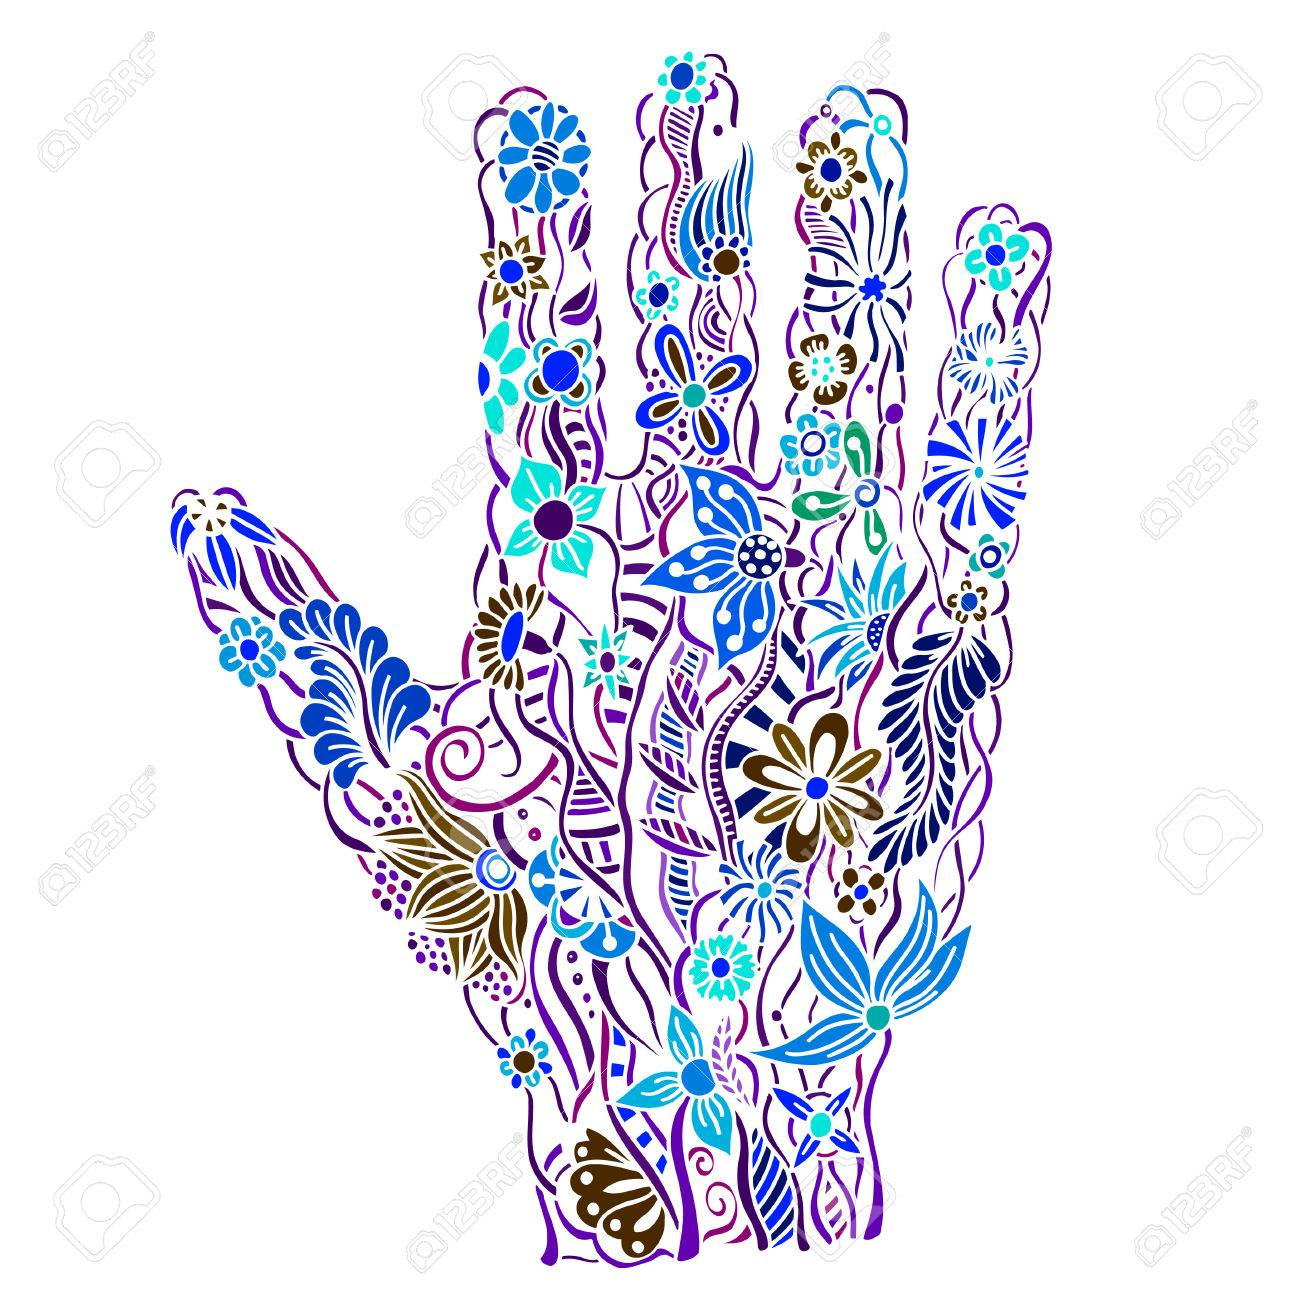 1300x1300 Human Hand Of The Beautiful Painted Flowers. Floral Palm, Hand